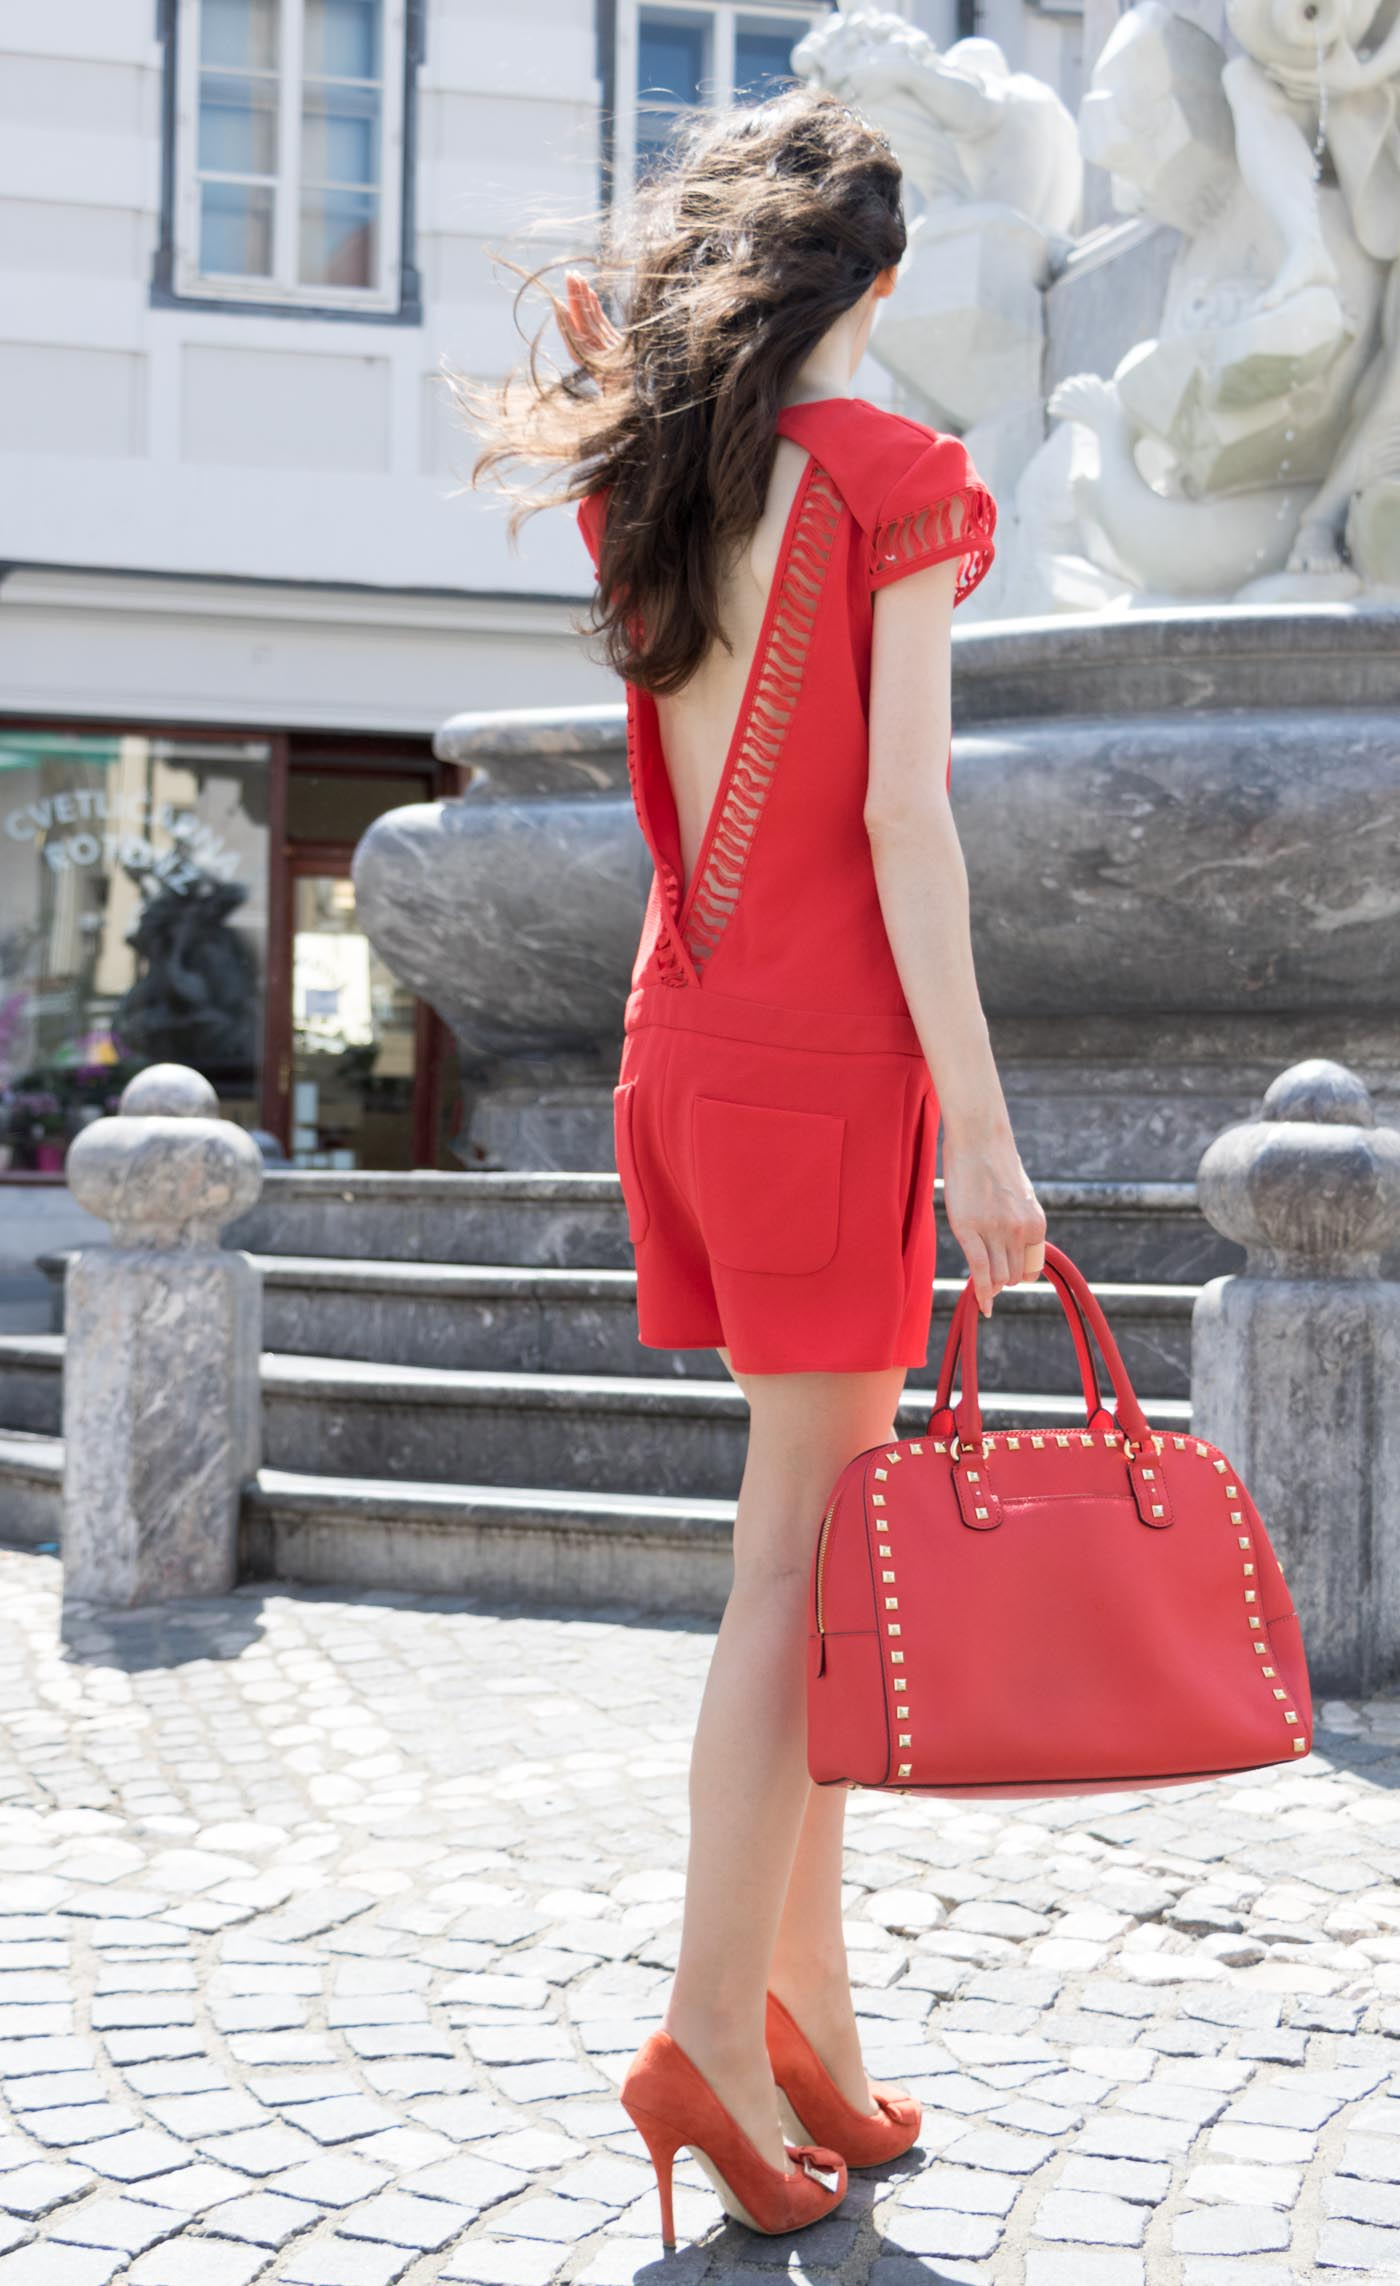 Fashion Blogger Veronika Lipar of Brunette from Wall Street wearing red romper with the open back, red heels and red Michael Kors tote bag in the city